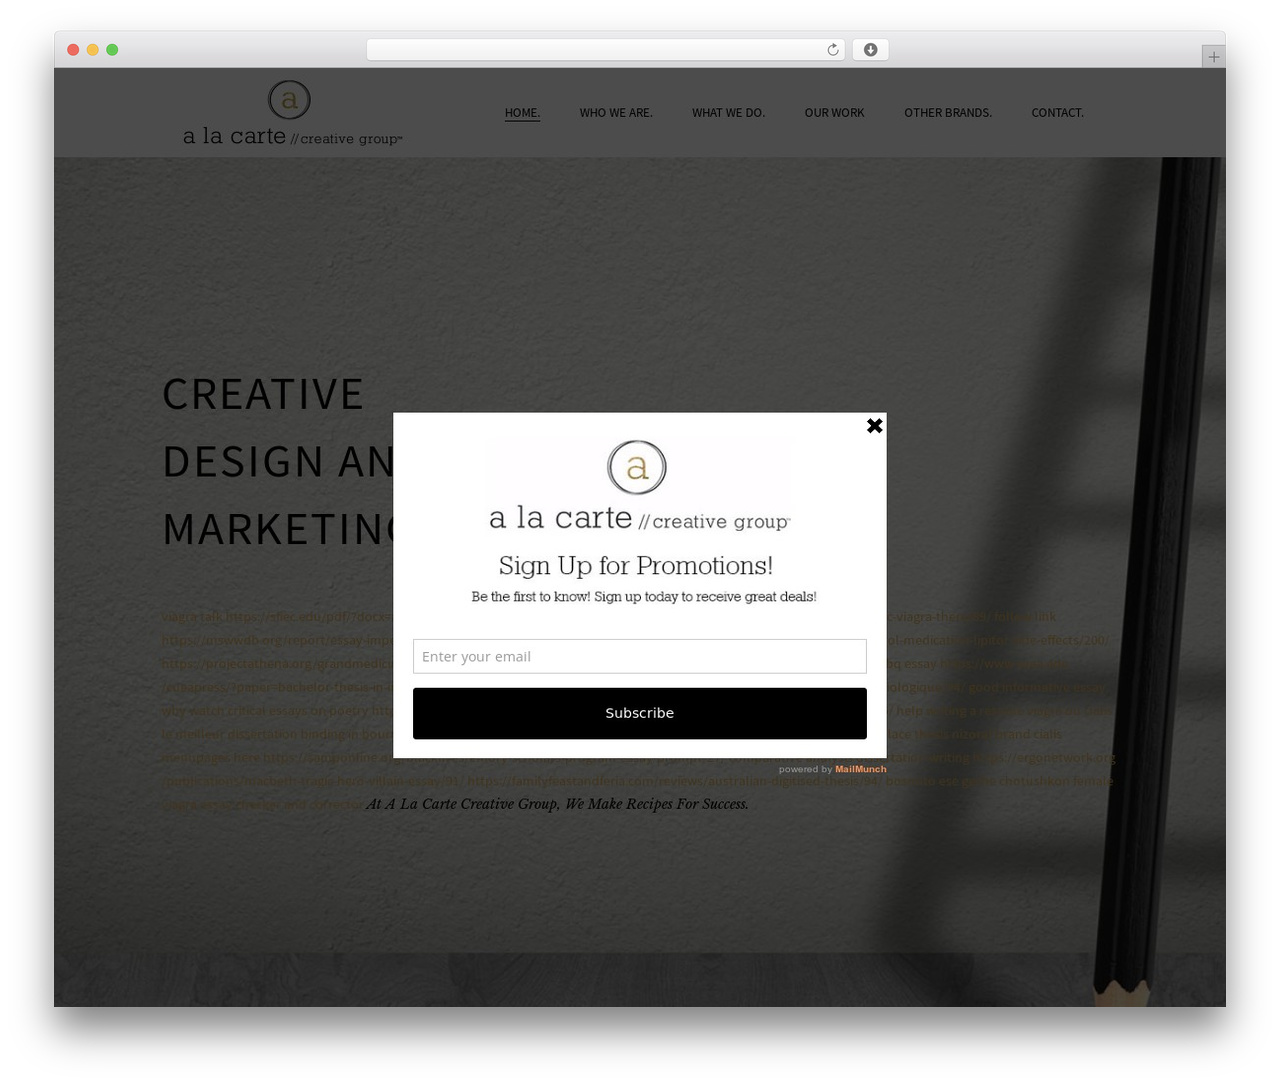 Beau WordPress theme - alacartecreativegroup.com